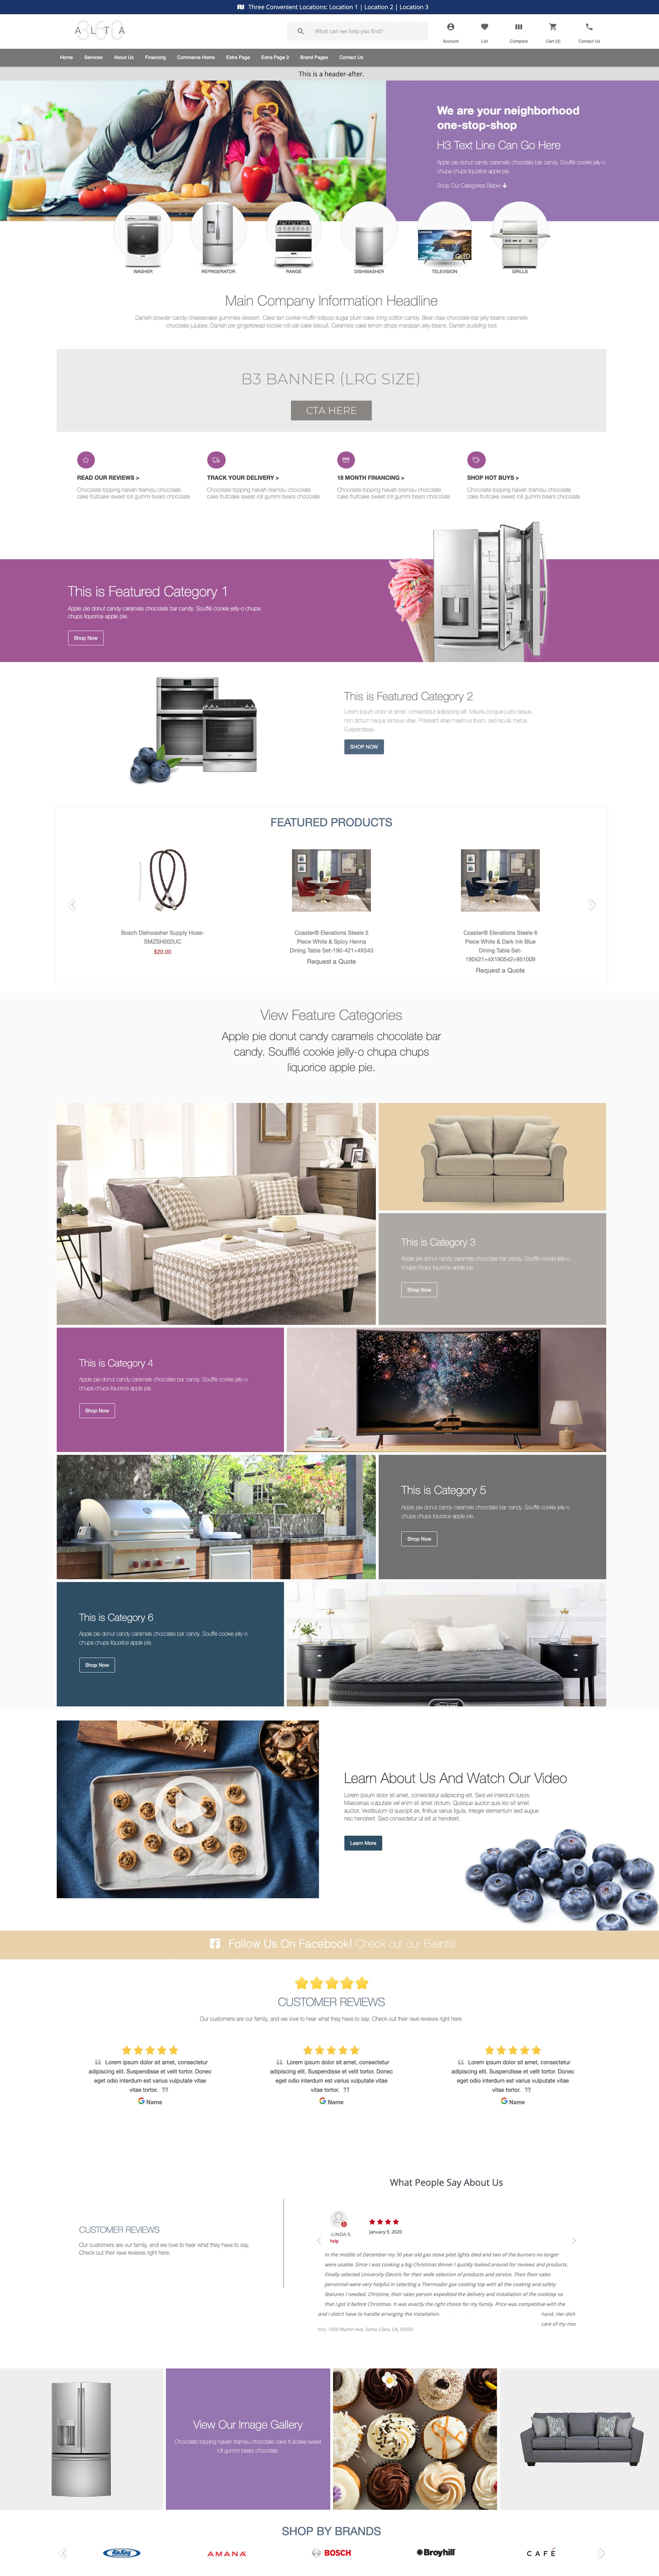 Website Themes - Commerce - Foothills